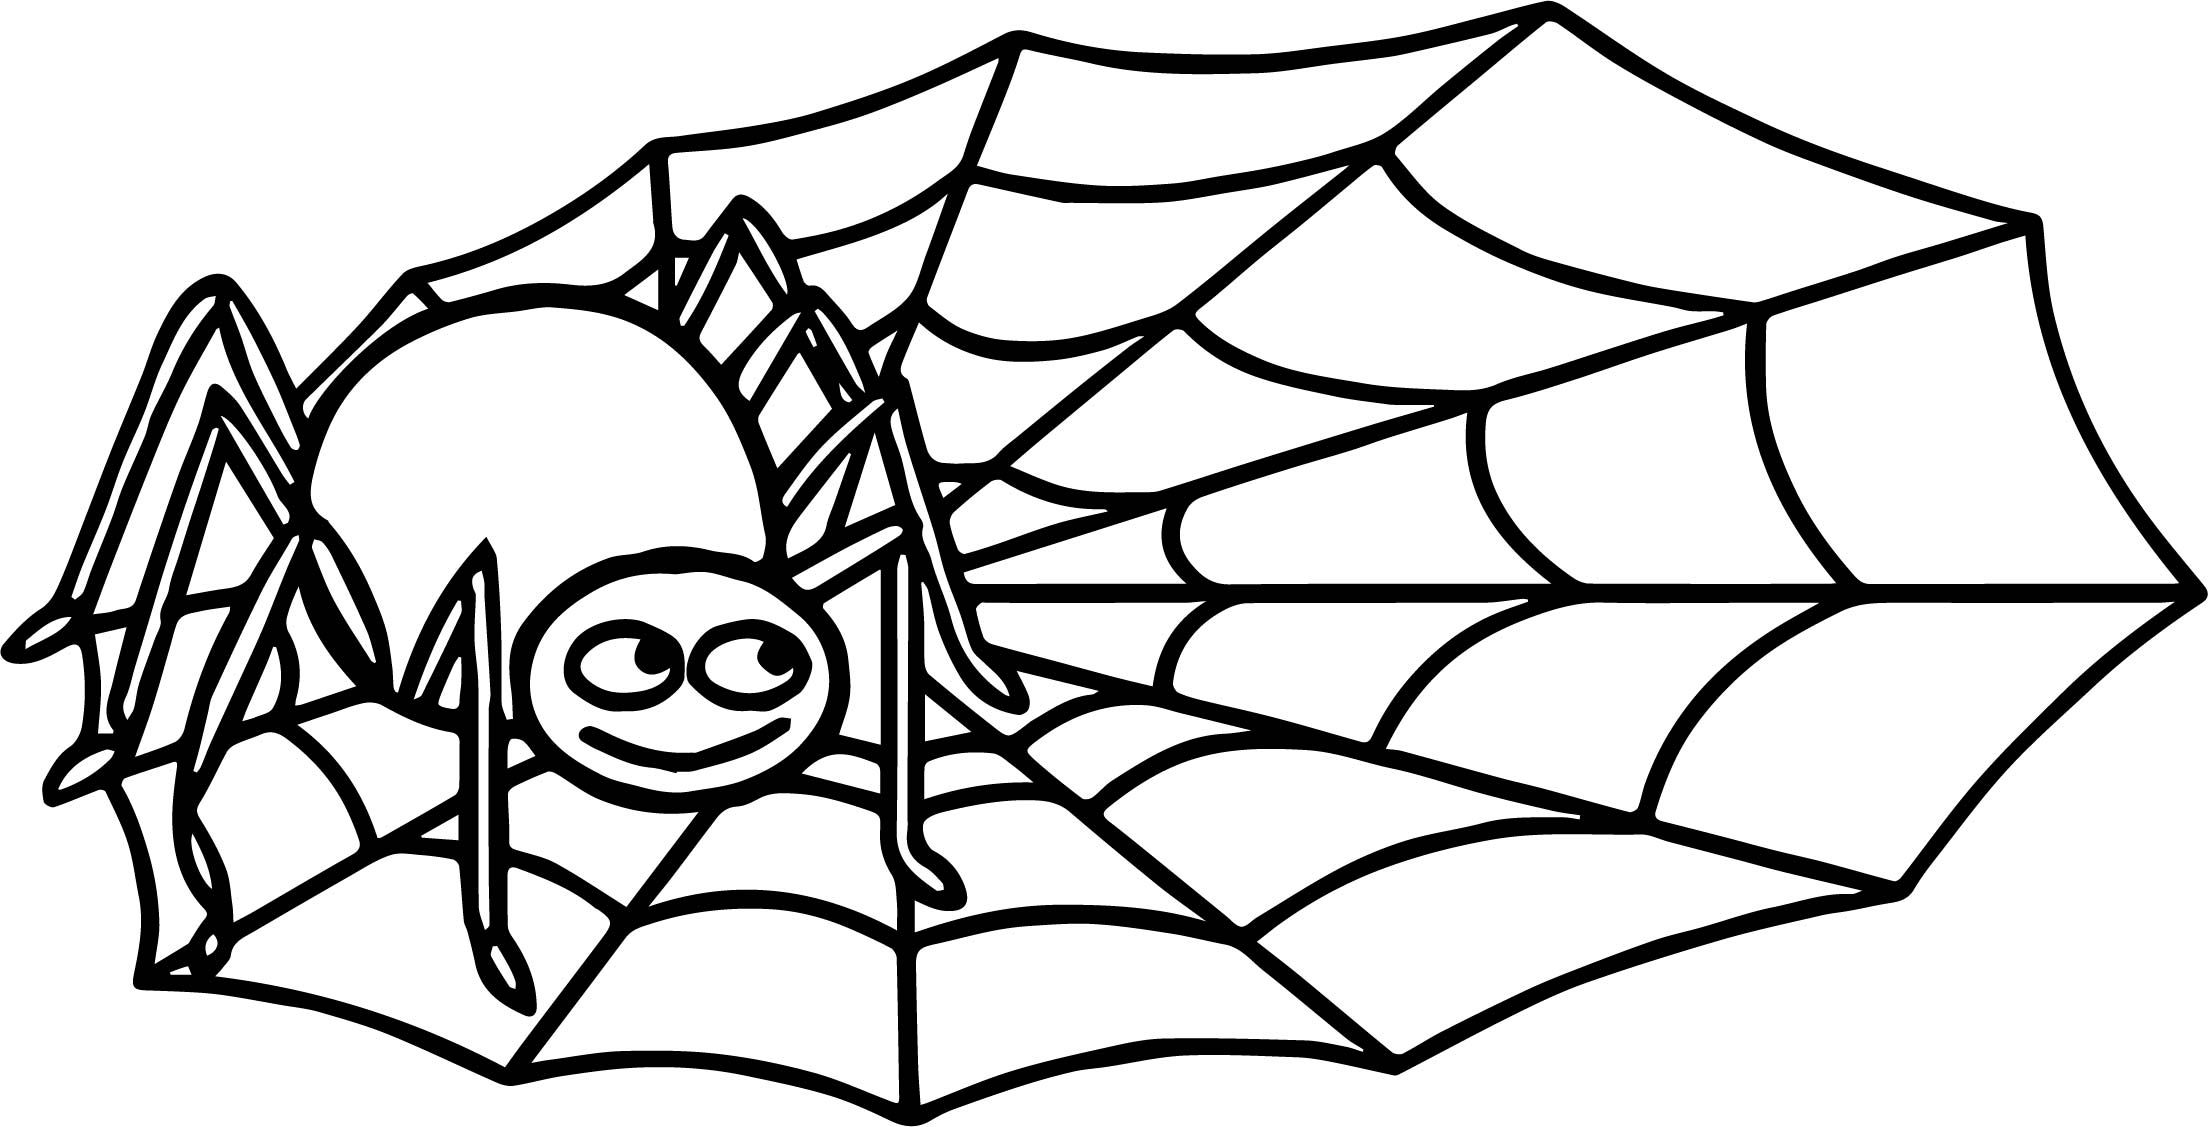 Anansi Spider Coloring Page | Spider